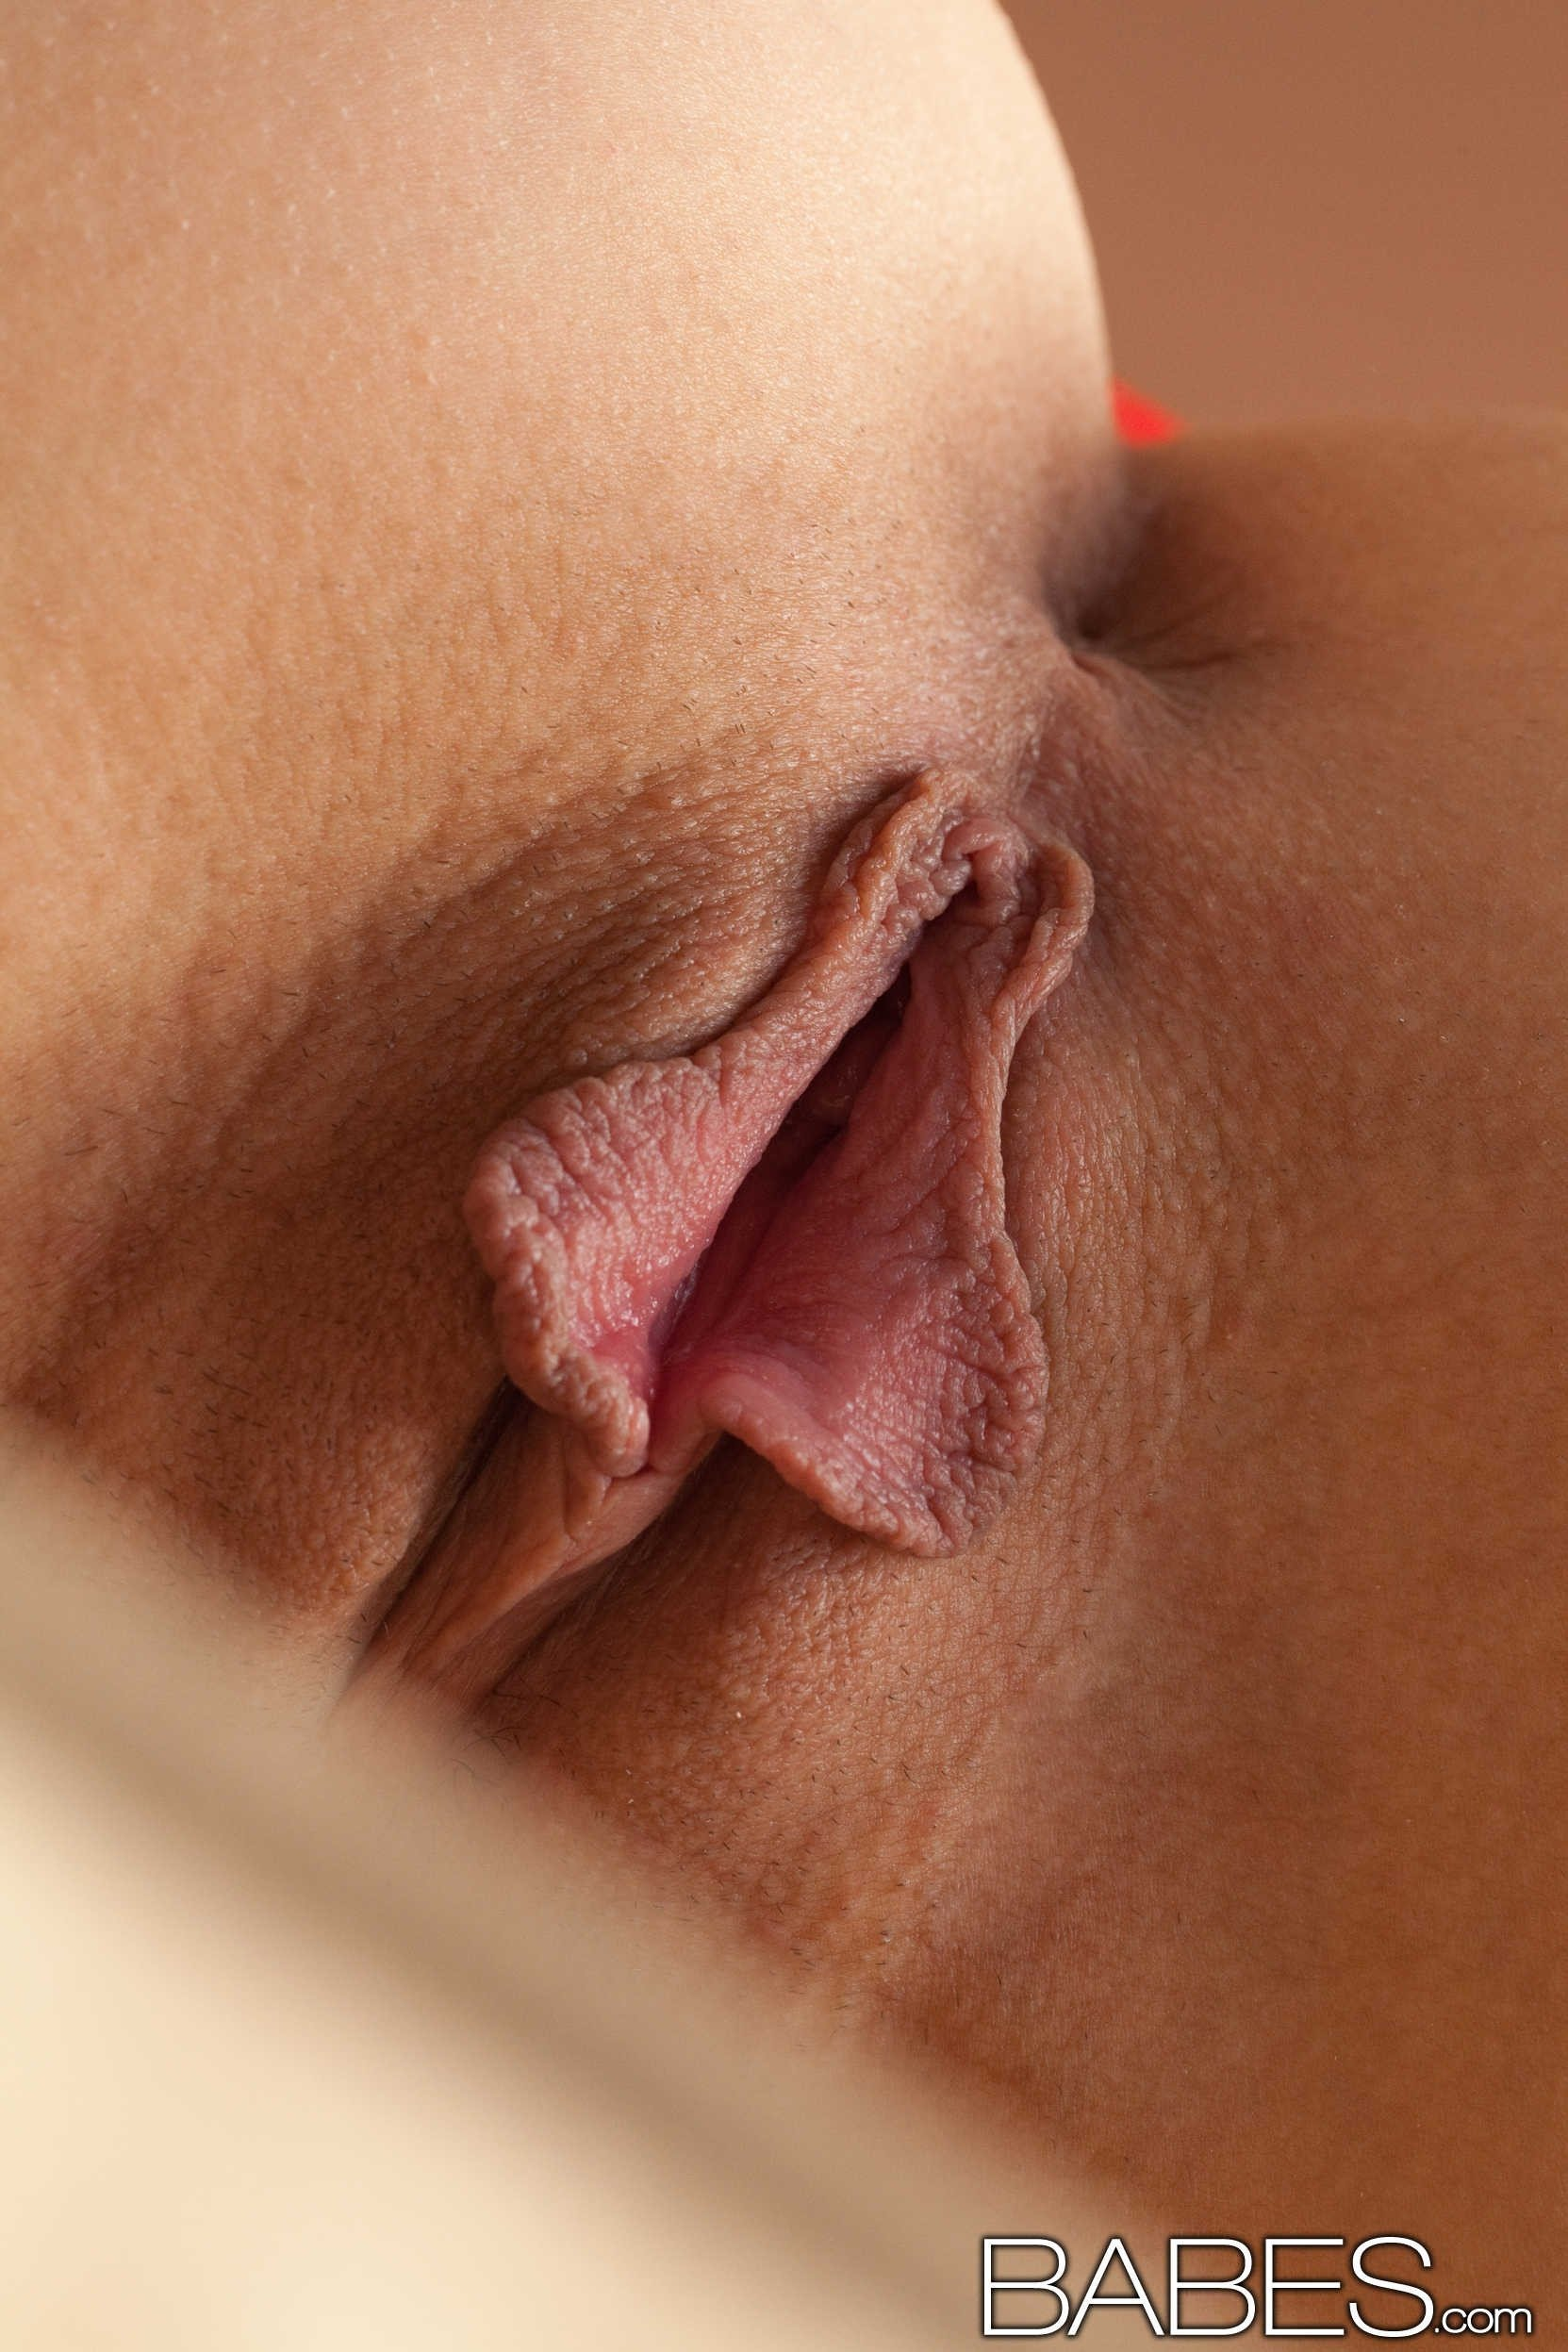 Free close-up pussy gallery